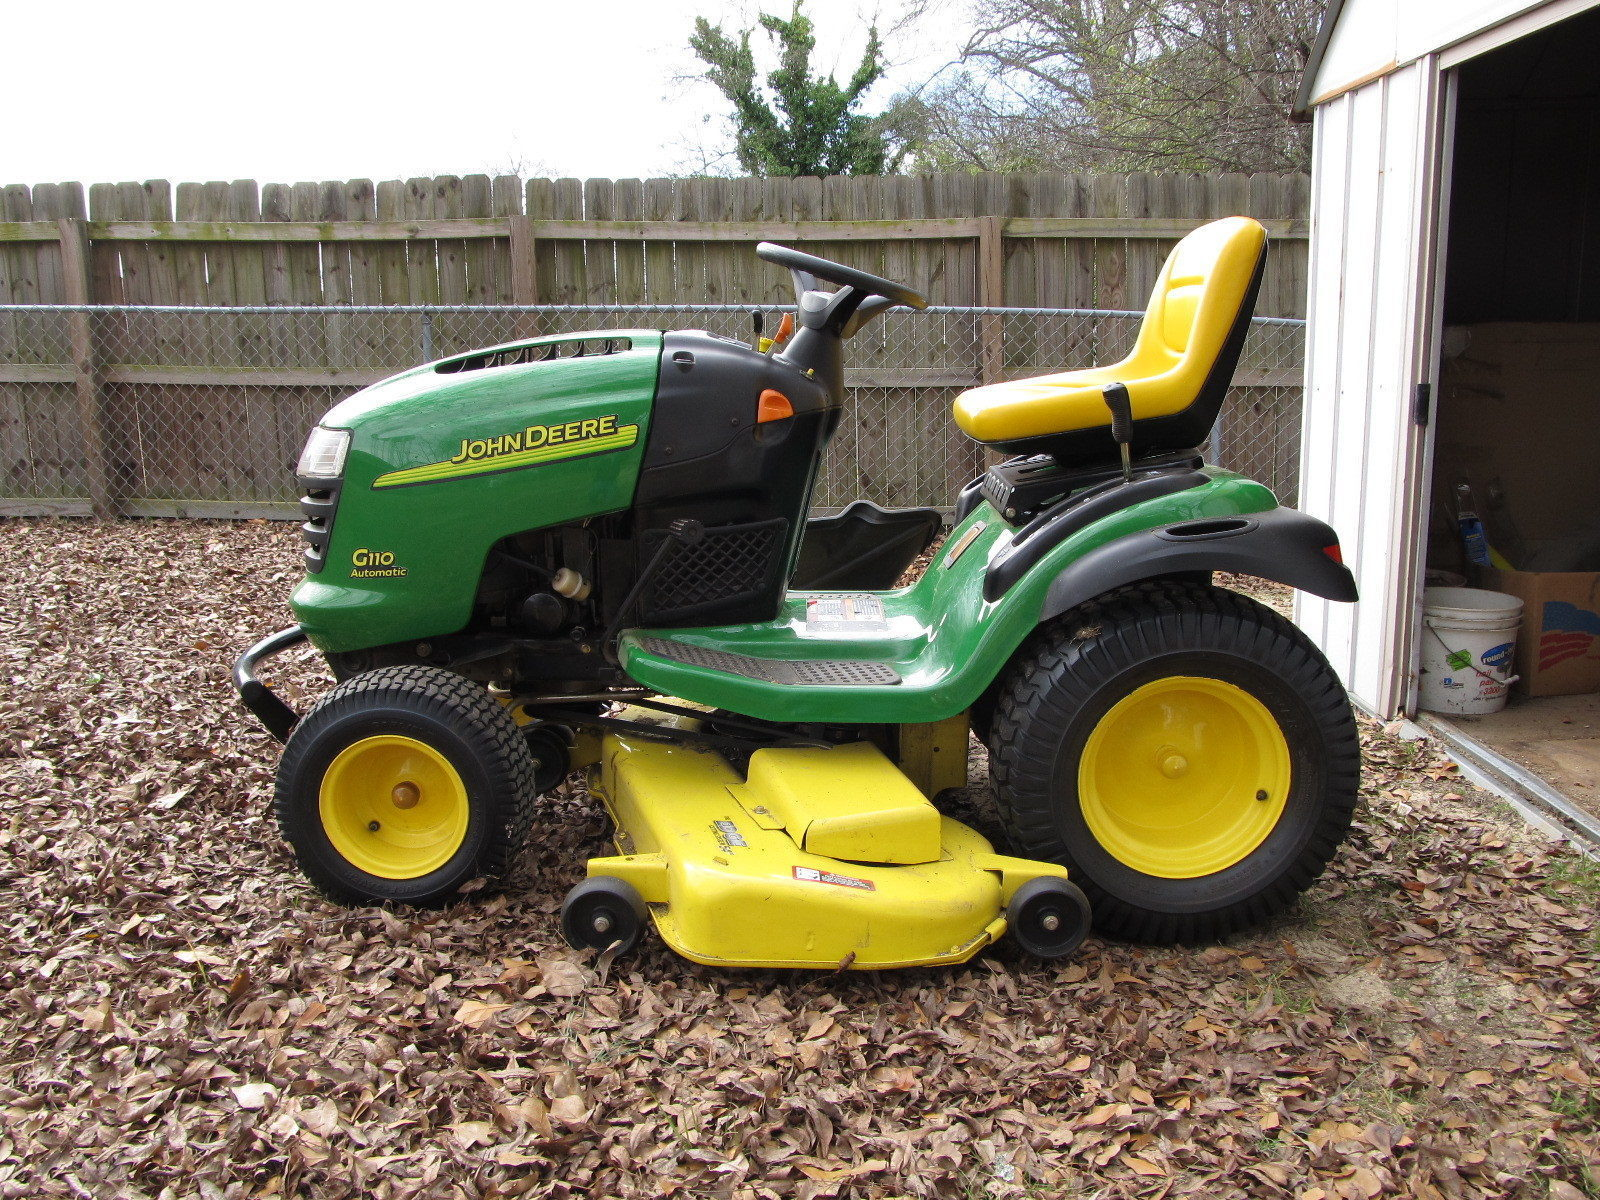 X350 Lawn Tractor with 48inch Deck  John Deere